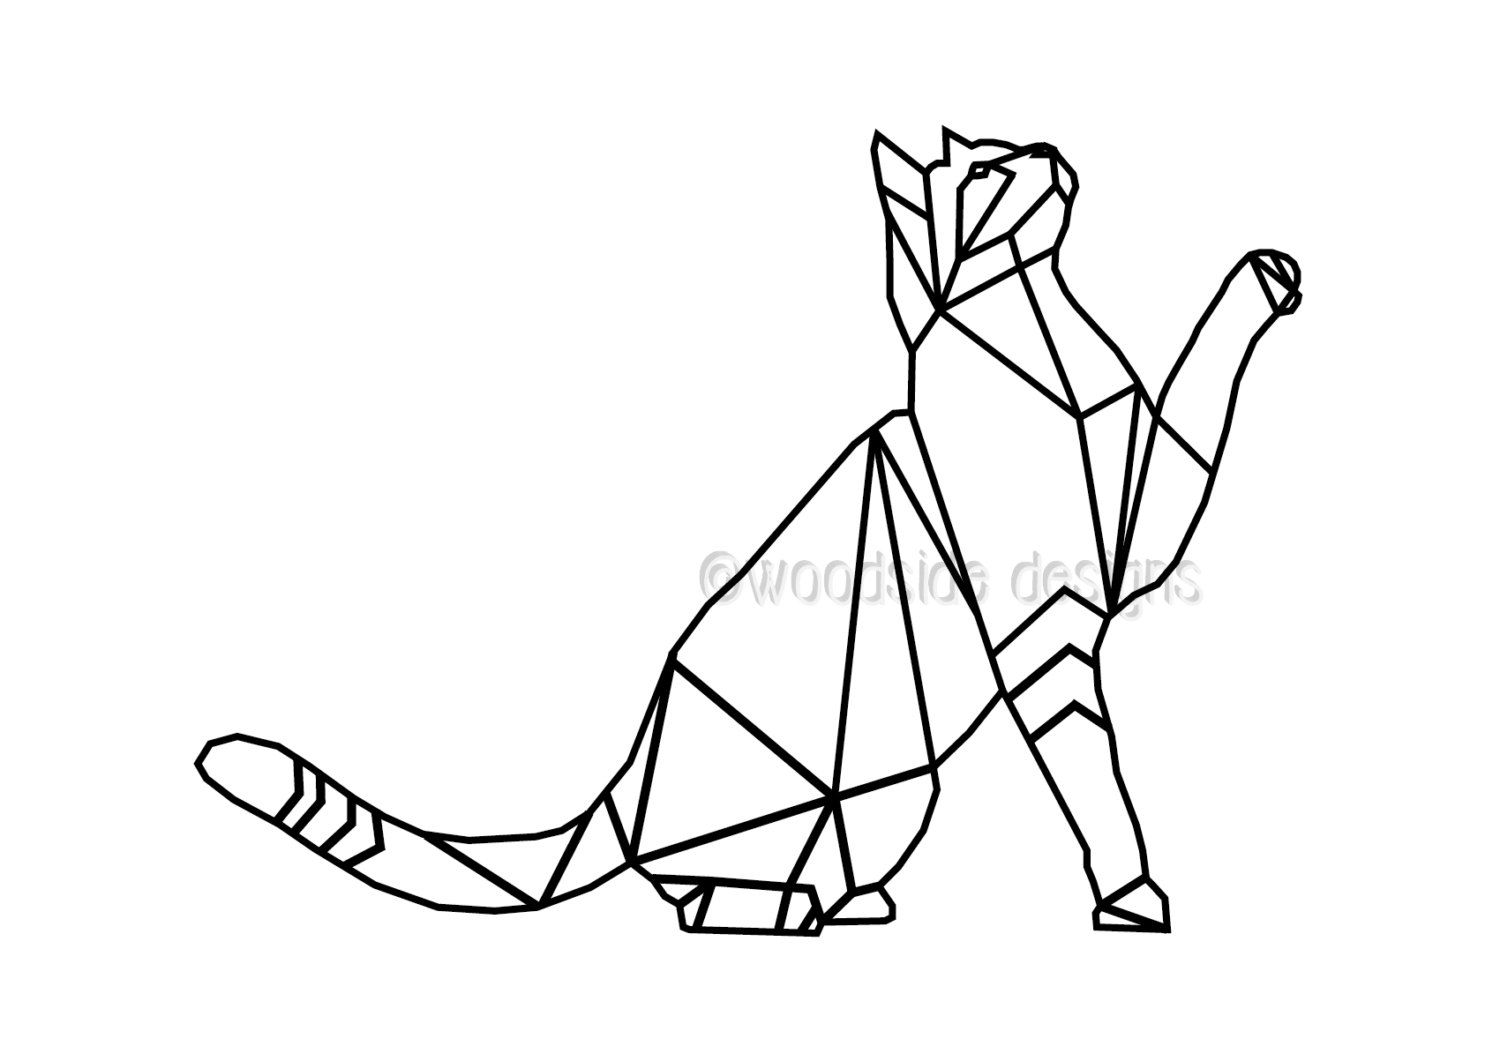 Geometric Cat Art Print, INSTANT DOWNLOAD, Wire Cat, Triangular Art, Printable Black and White Cat Poster, Cat Tattoo Outline, Clip Art